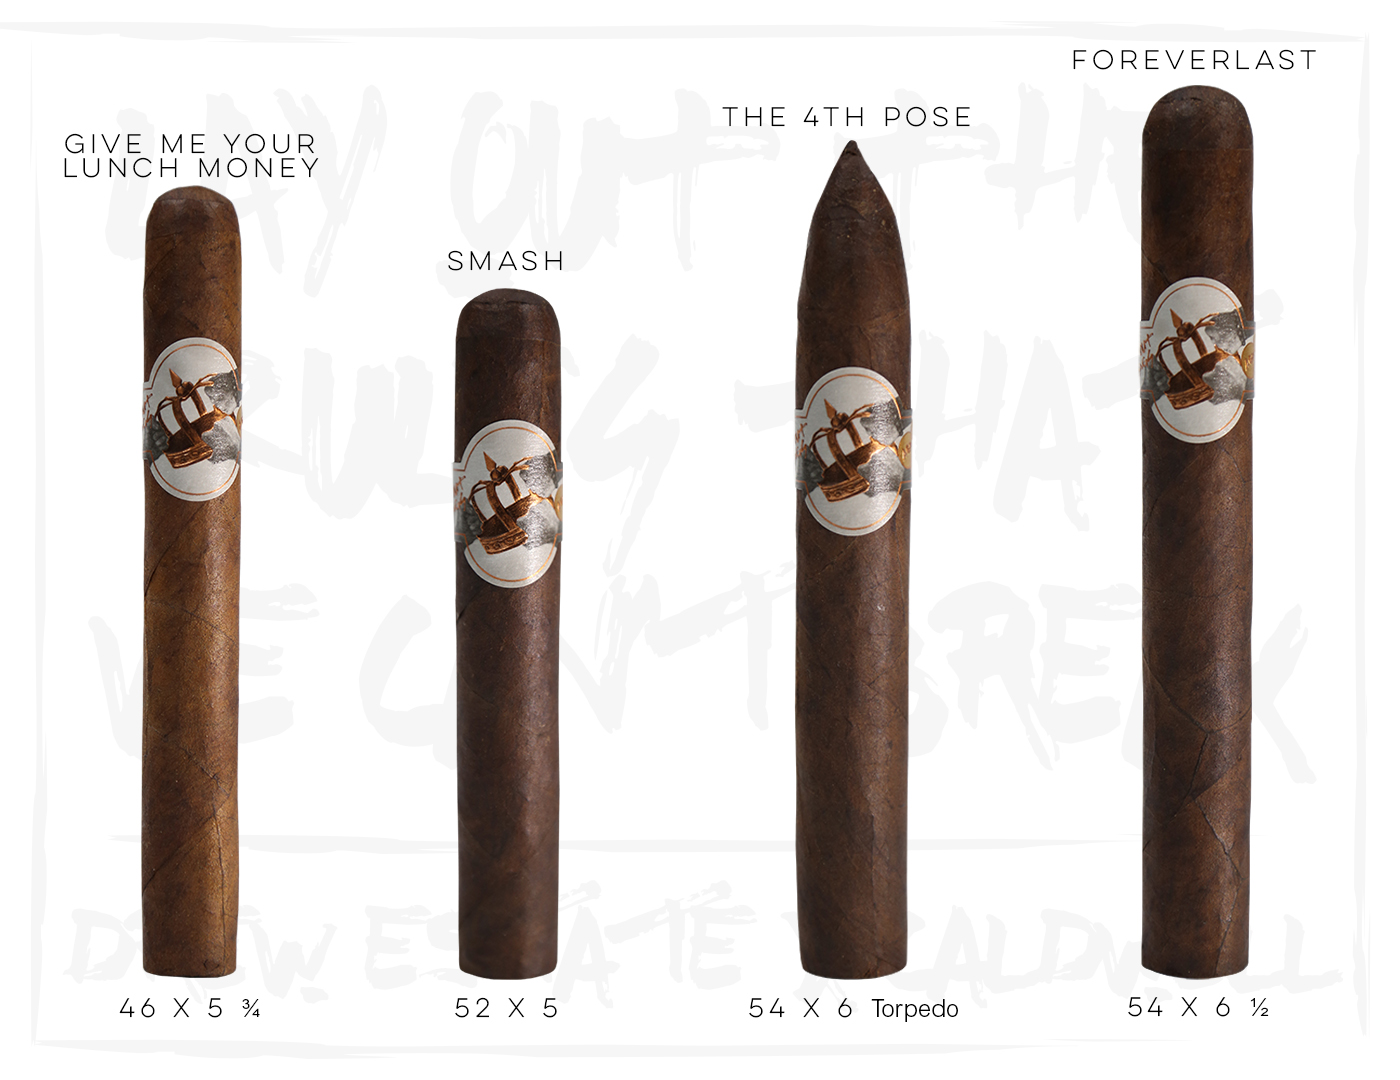 Caldwell All Out Kings cigar sizes